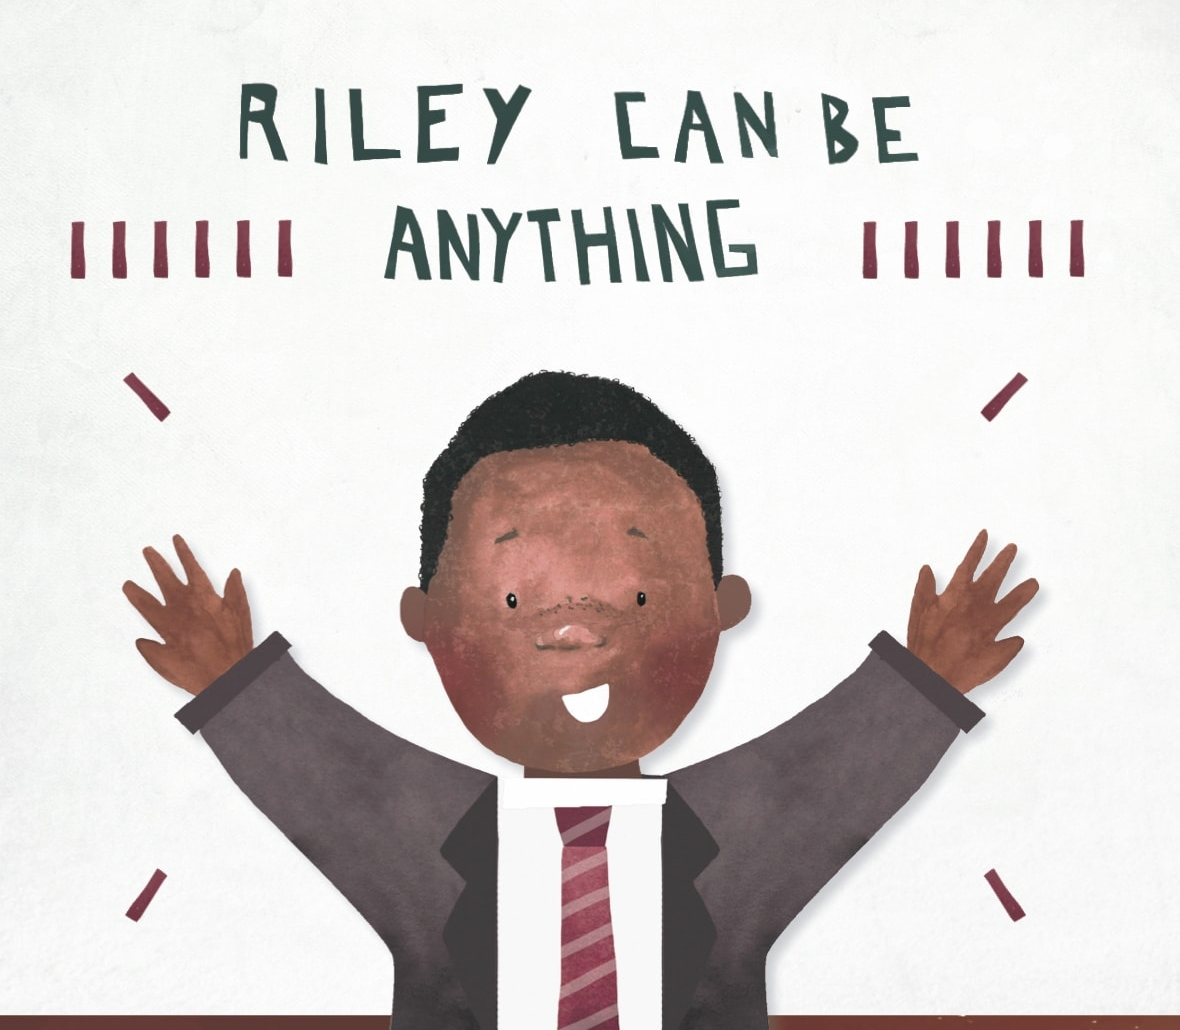 Black Kids' Books Reviewed: Riley Can Be Anything